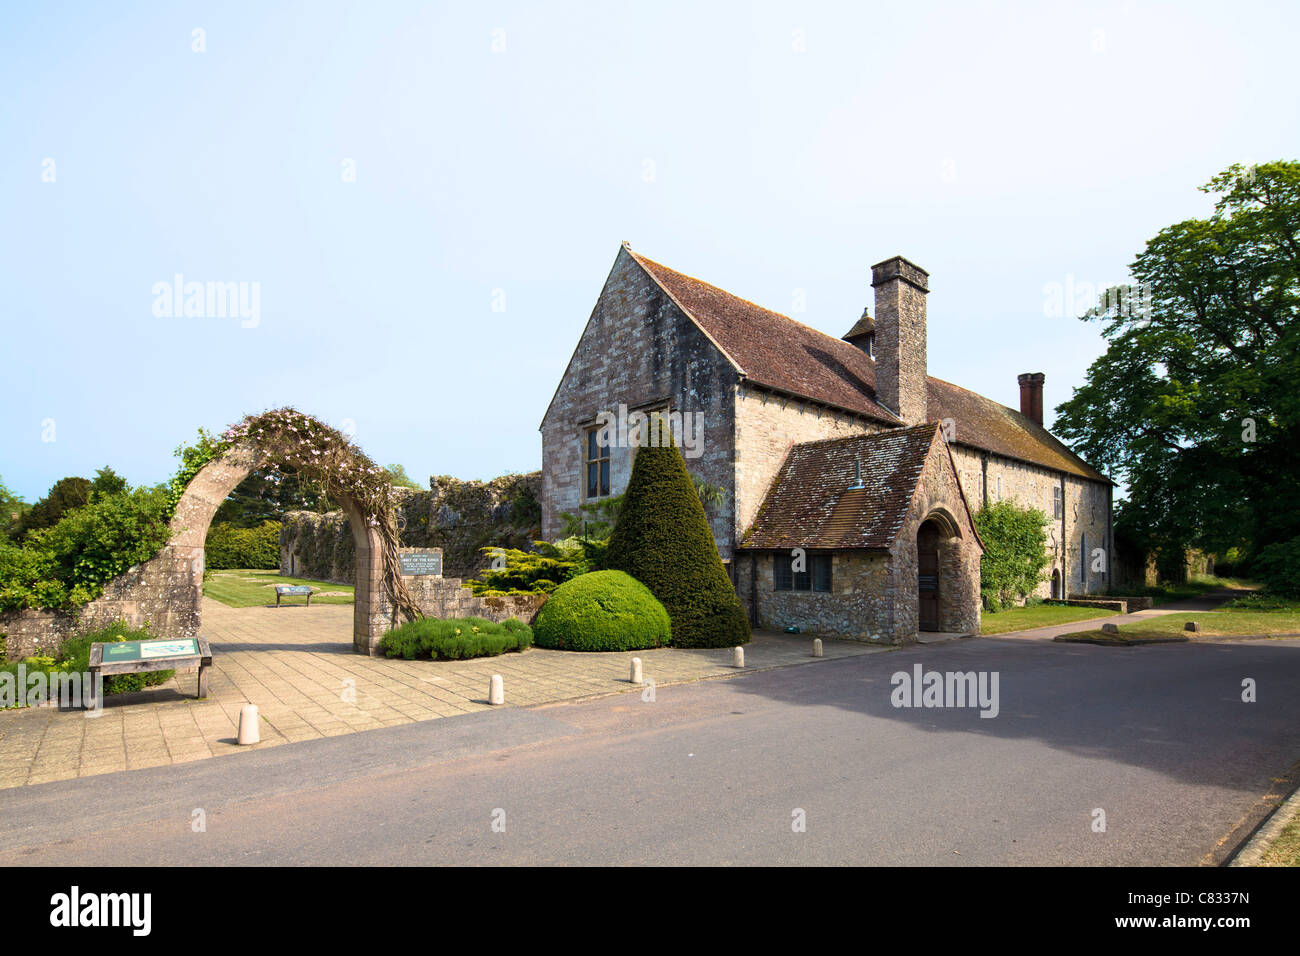 1204 Beaulieu Abbey, New Forest - Stock Image